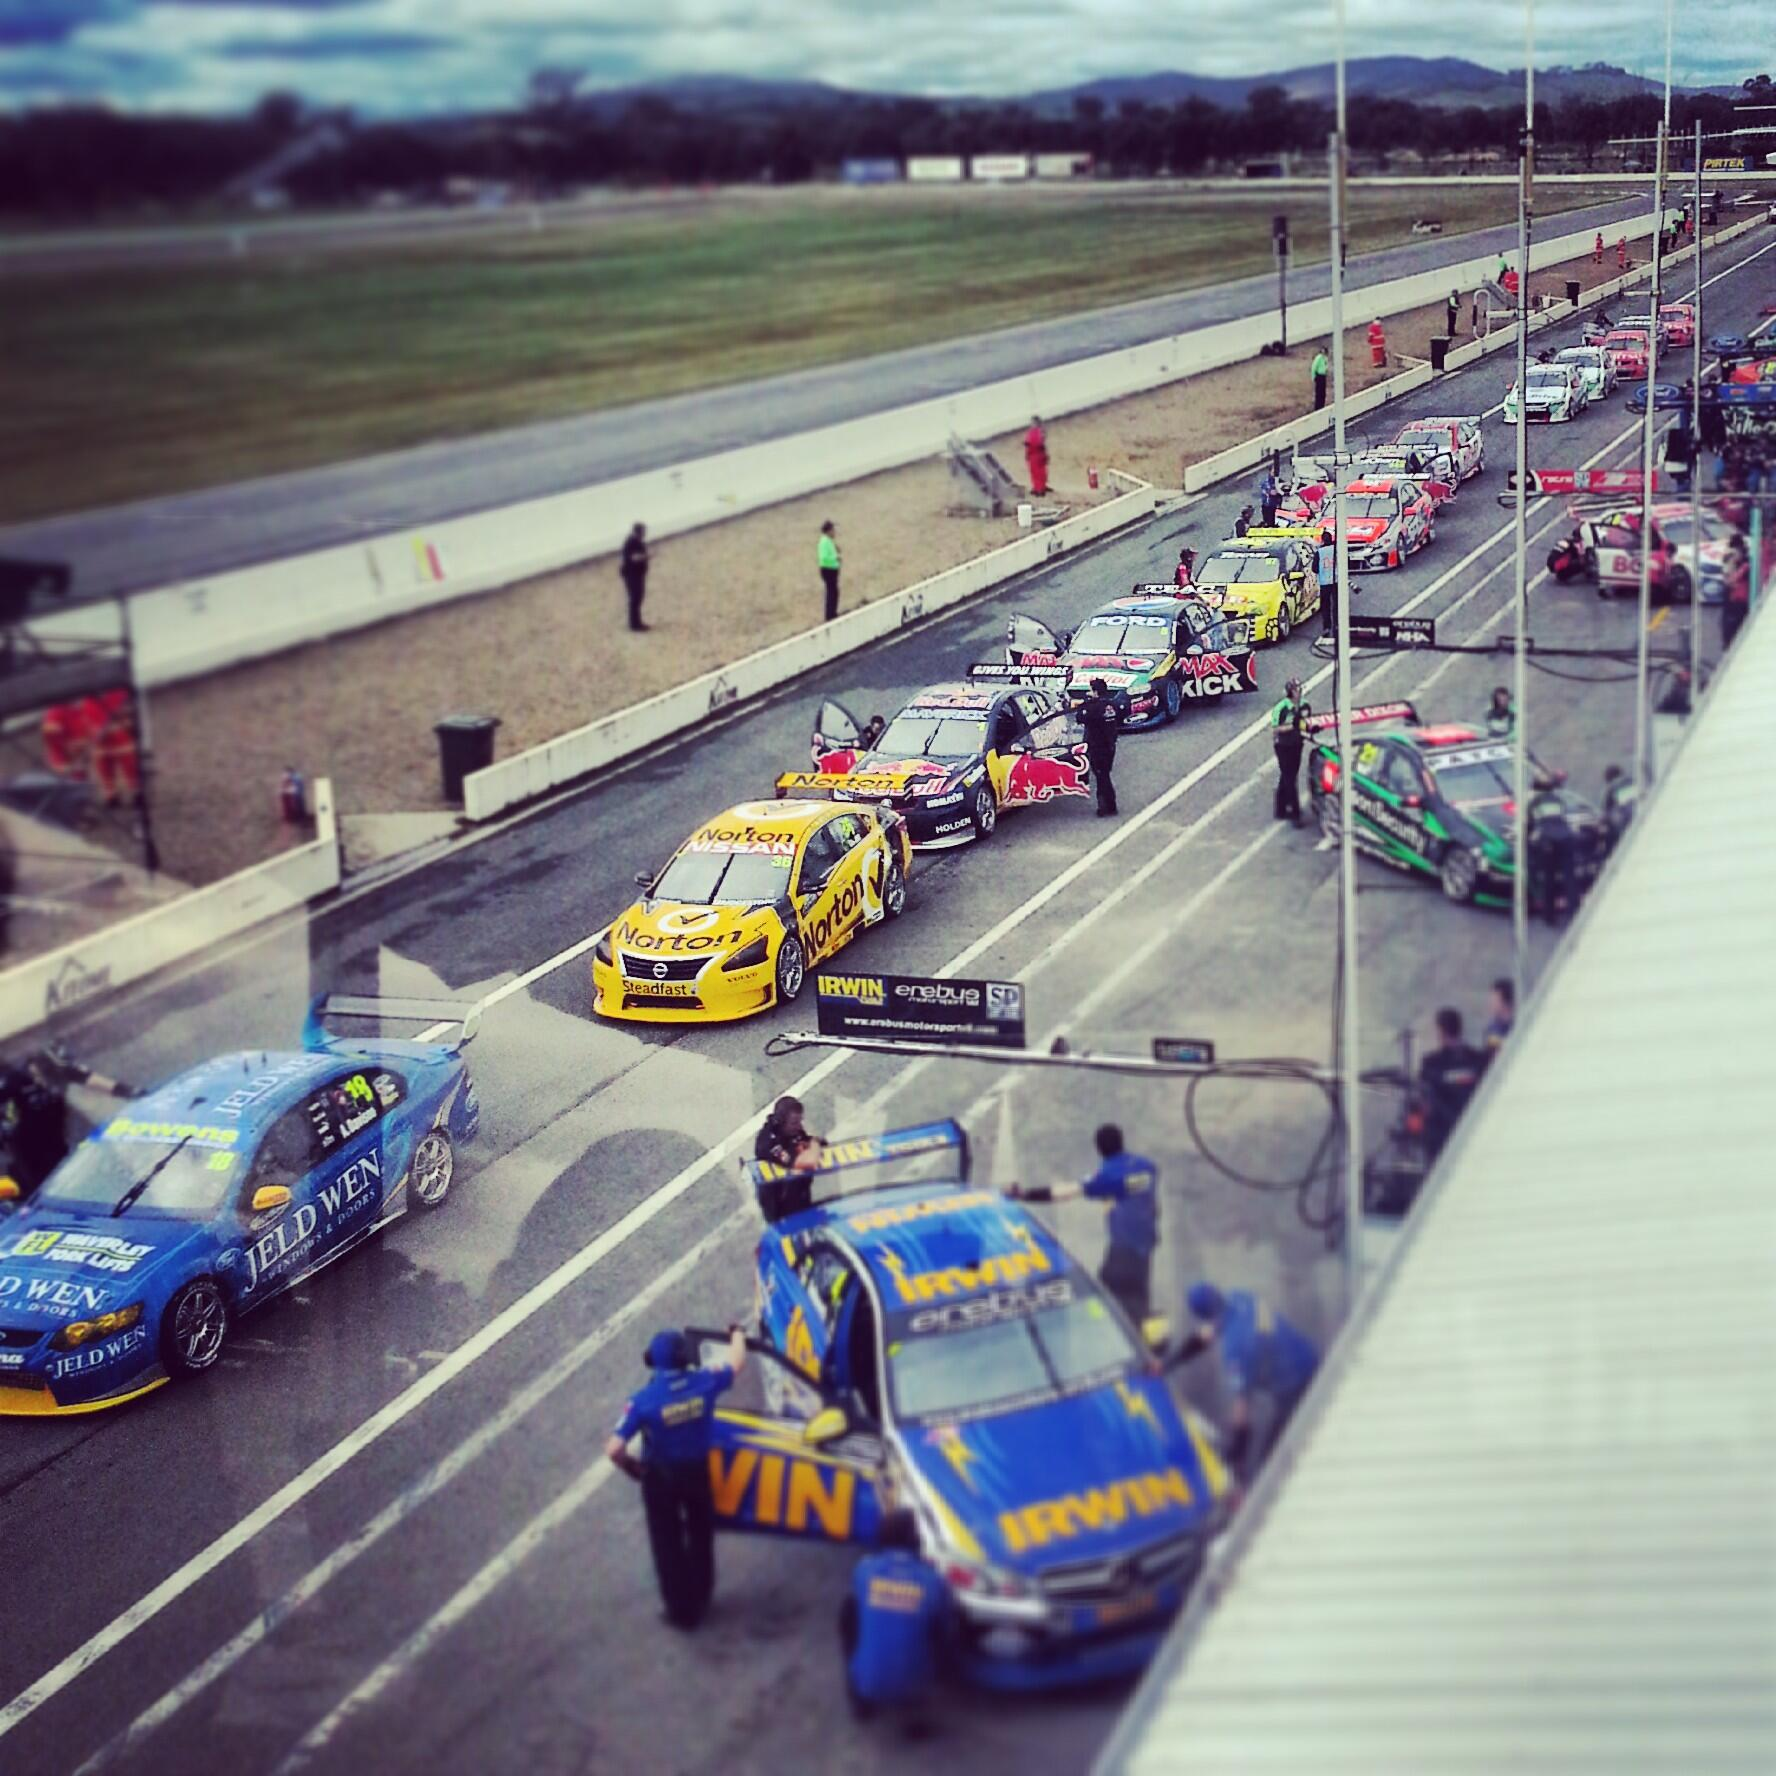 Session red flagged. Everyone ready to get going #v8sc http://t.co/j4N0wLf9Go